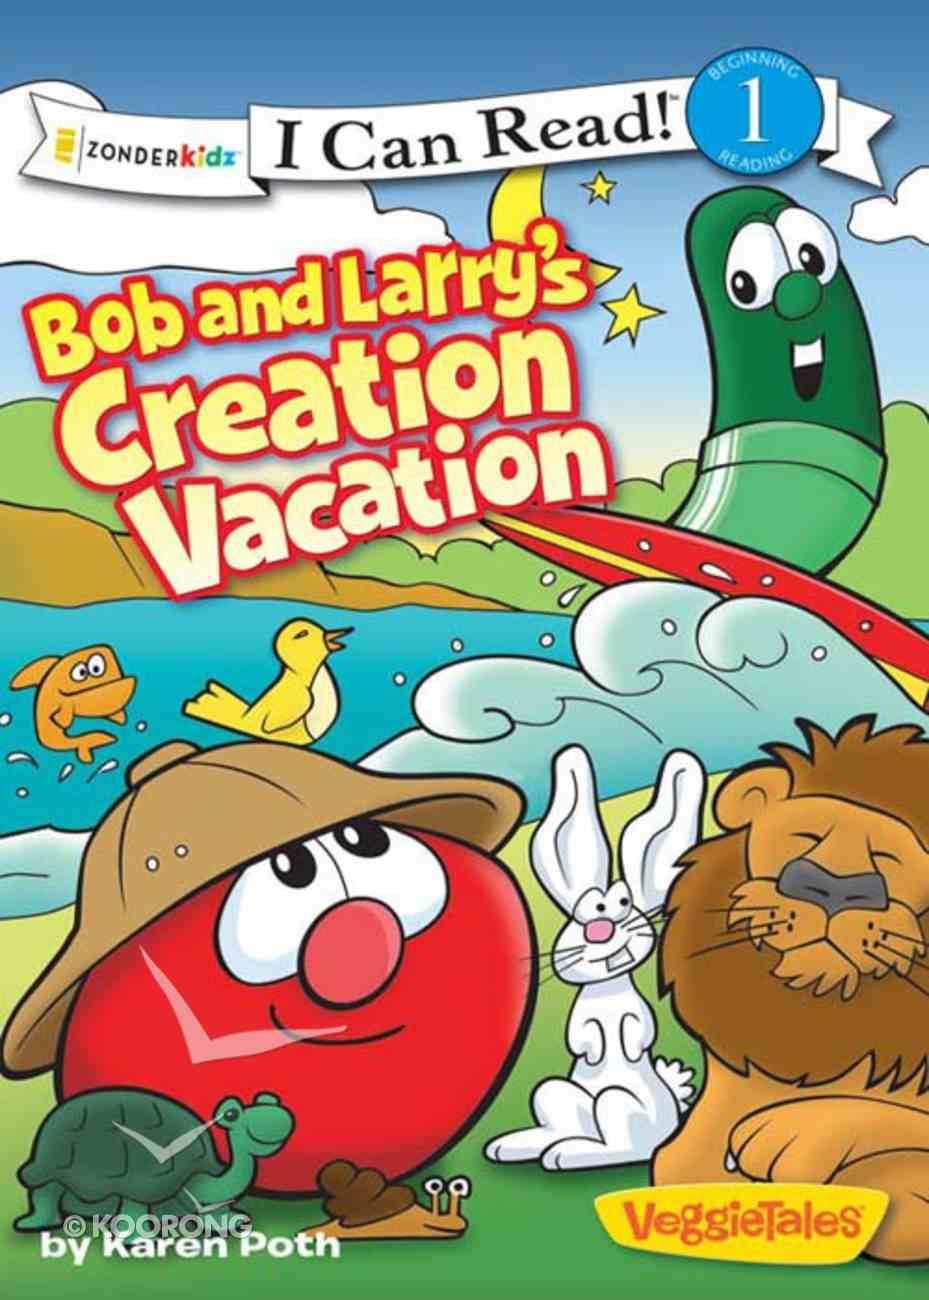 Bob and Larry's Creation Vacation (I Can Read!1/veggietales Series) eBook